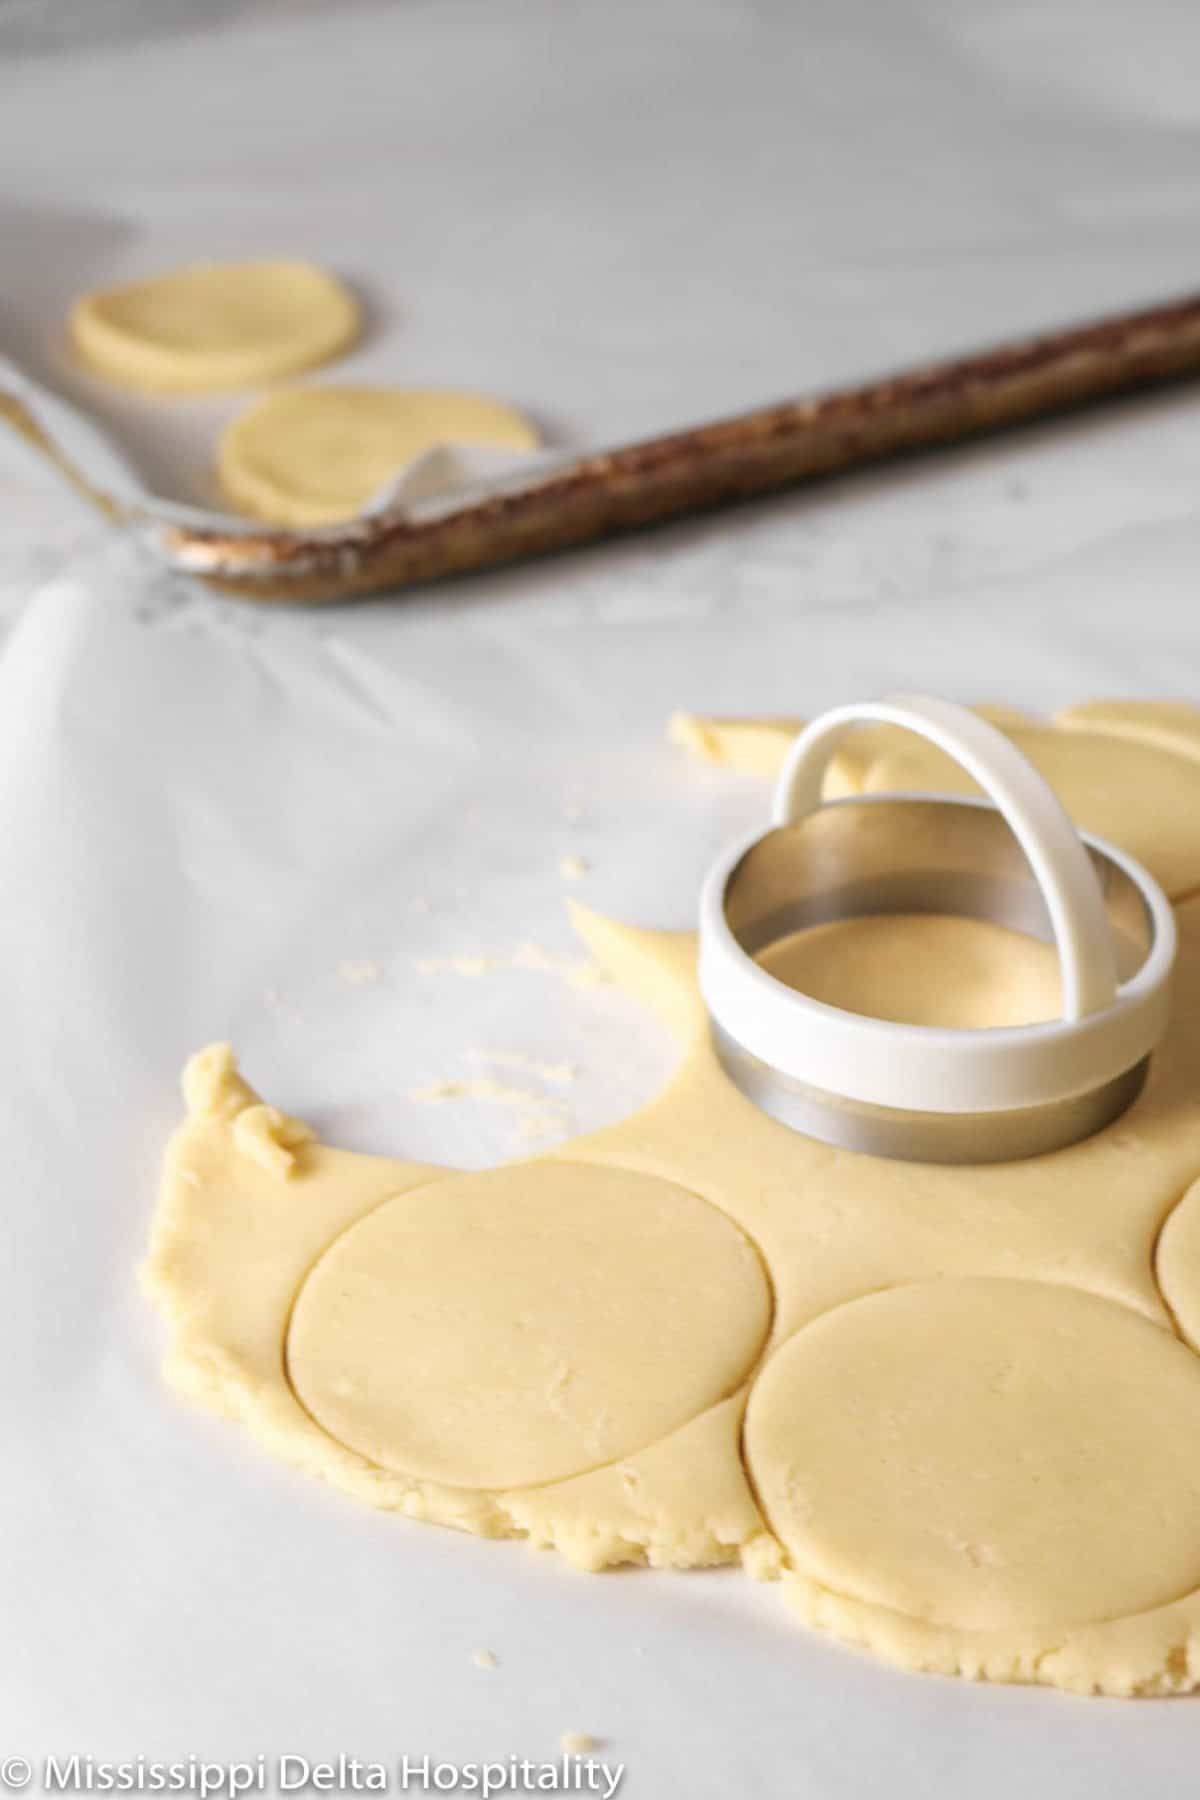 cookies being cut and placed on a sheet pan